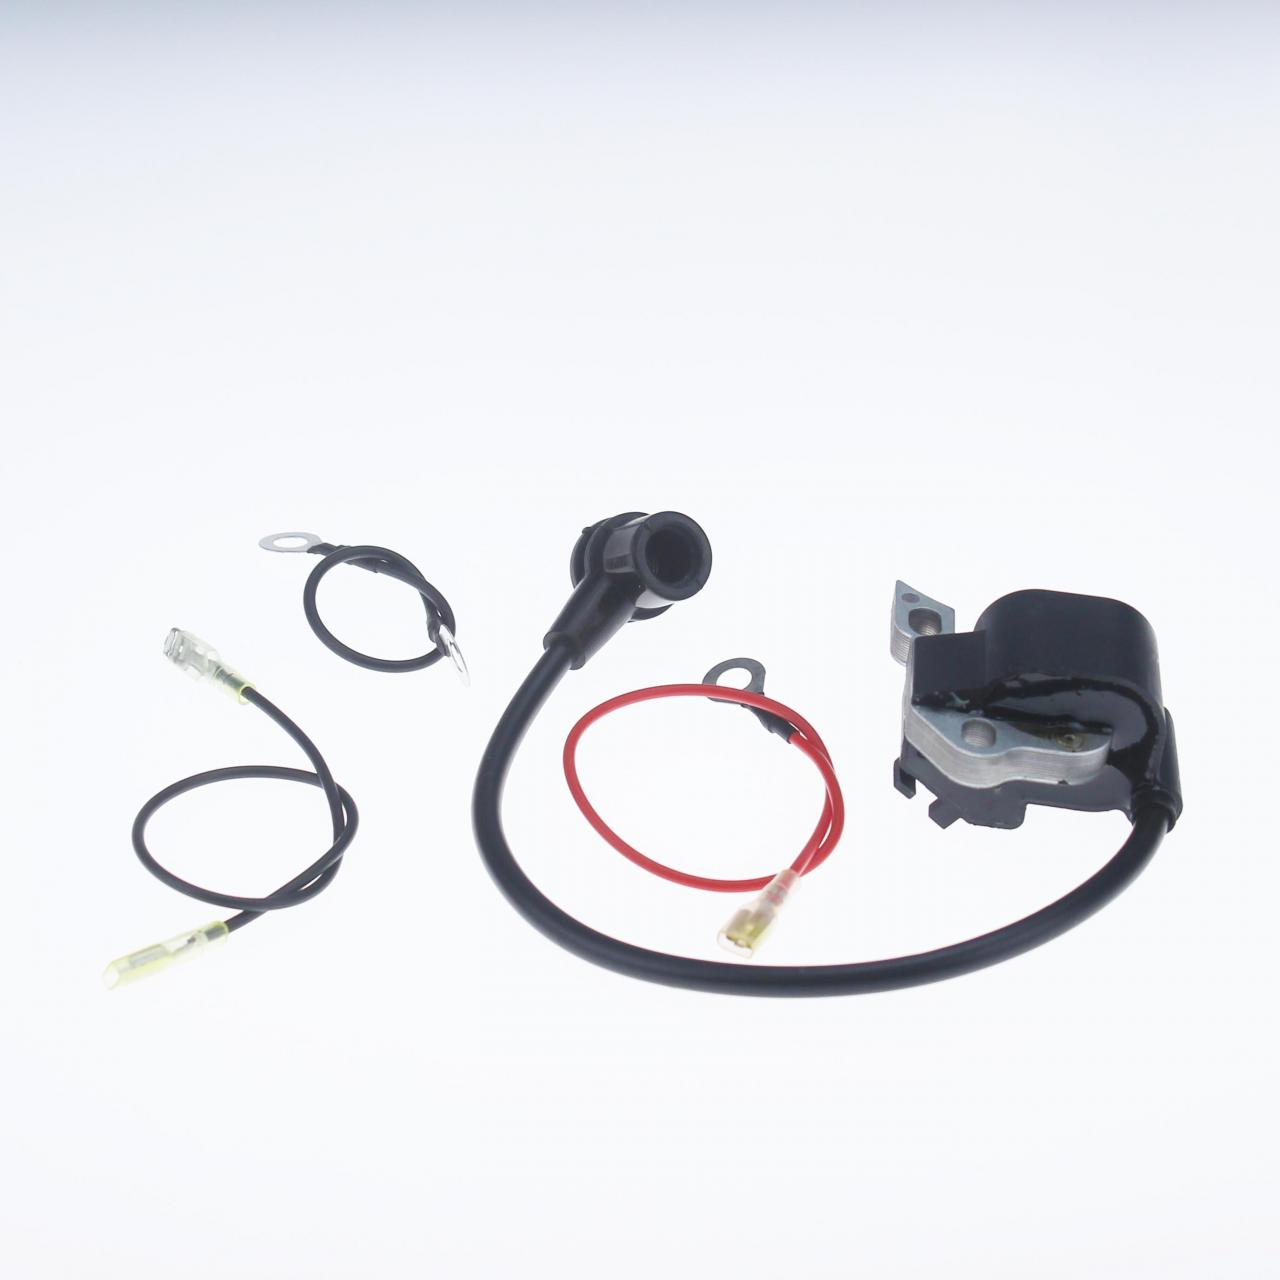 Buy cheap PUMP Products IGNITION COIL FITS STIHL CHAINSAW MS210 021 MS230 023 MS250 025 MODULE from wholesalers